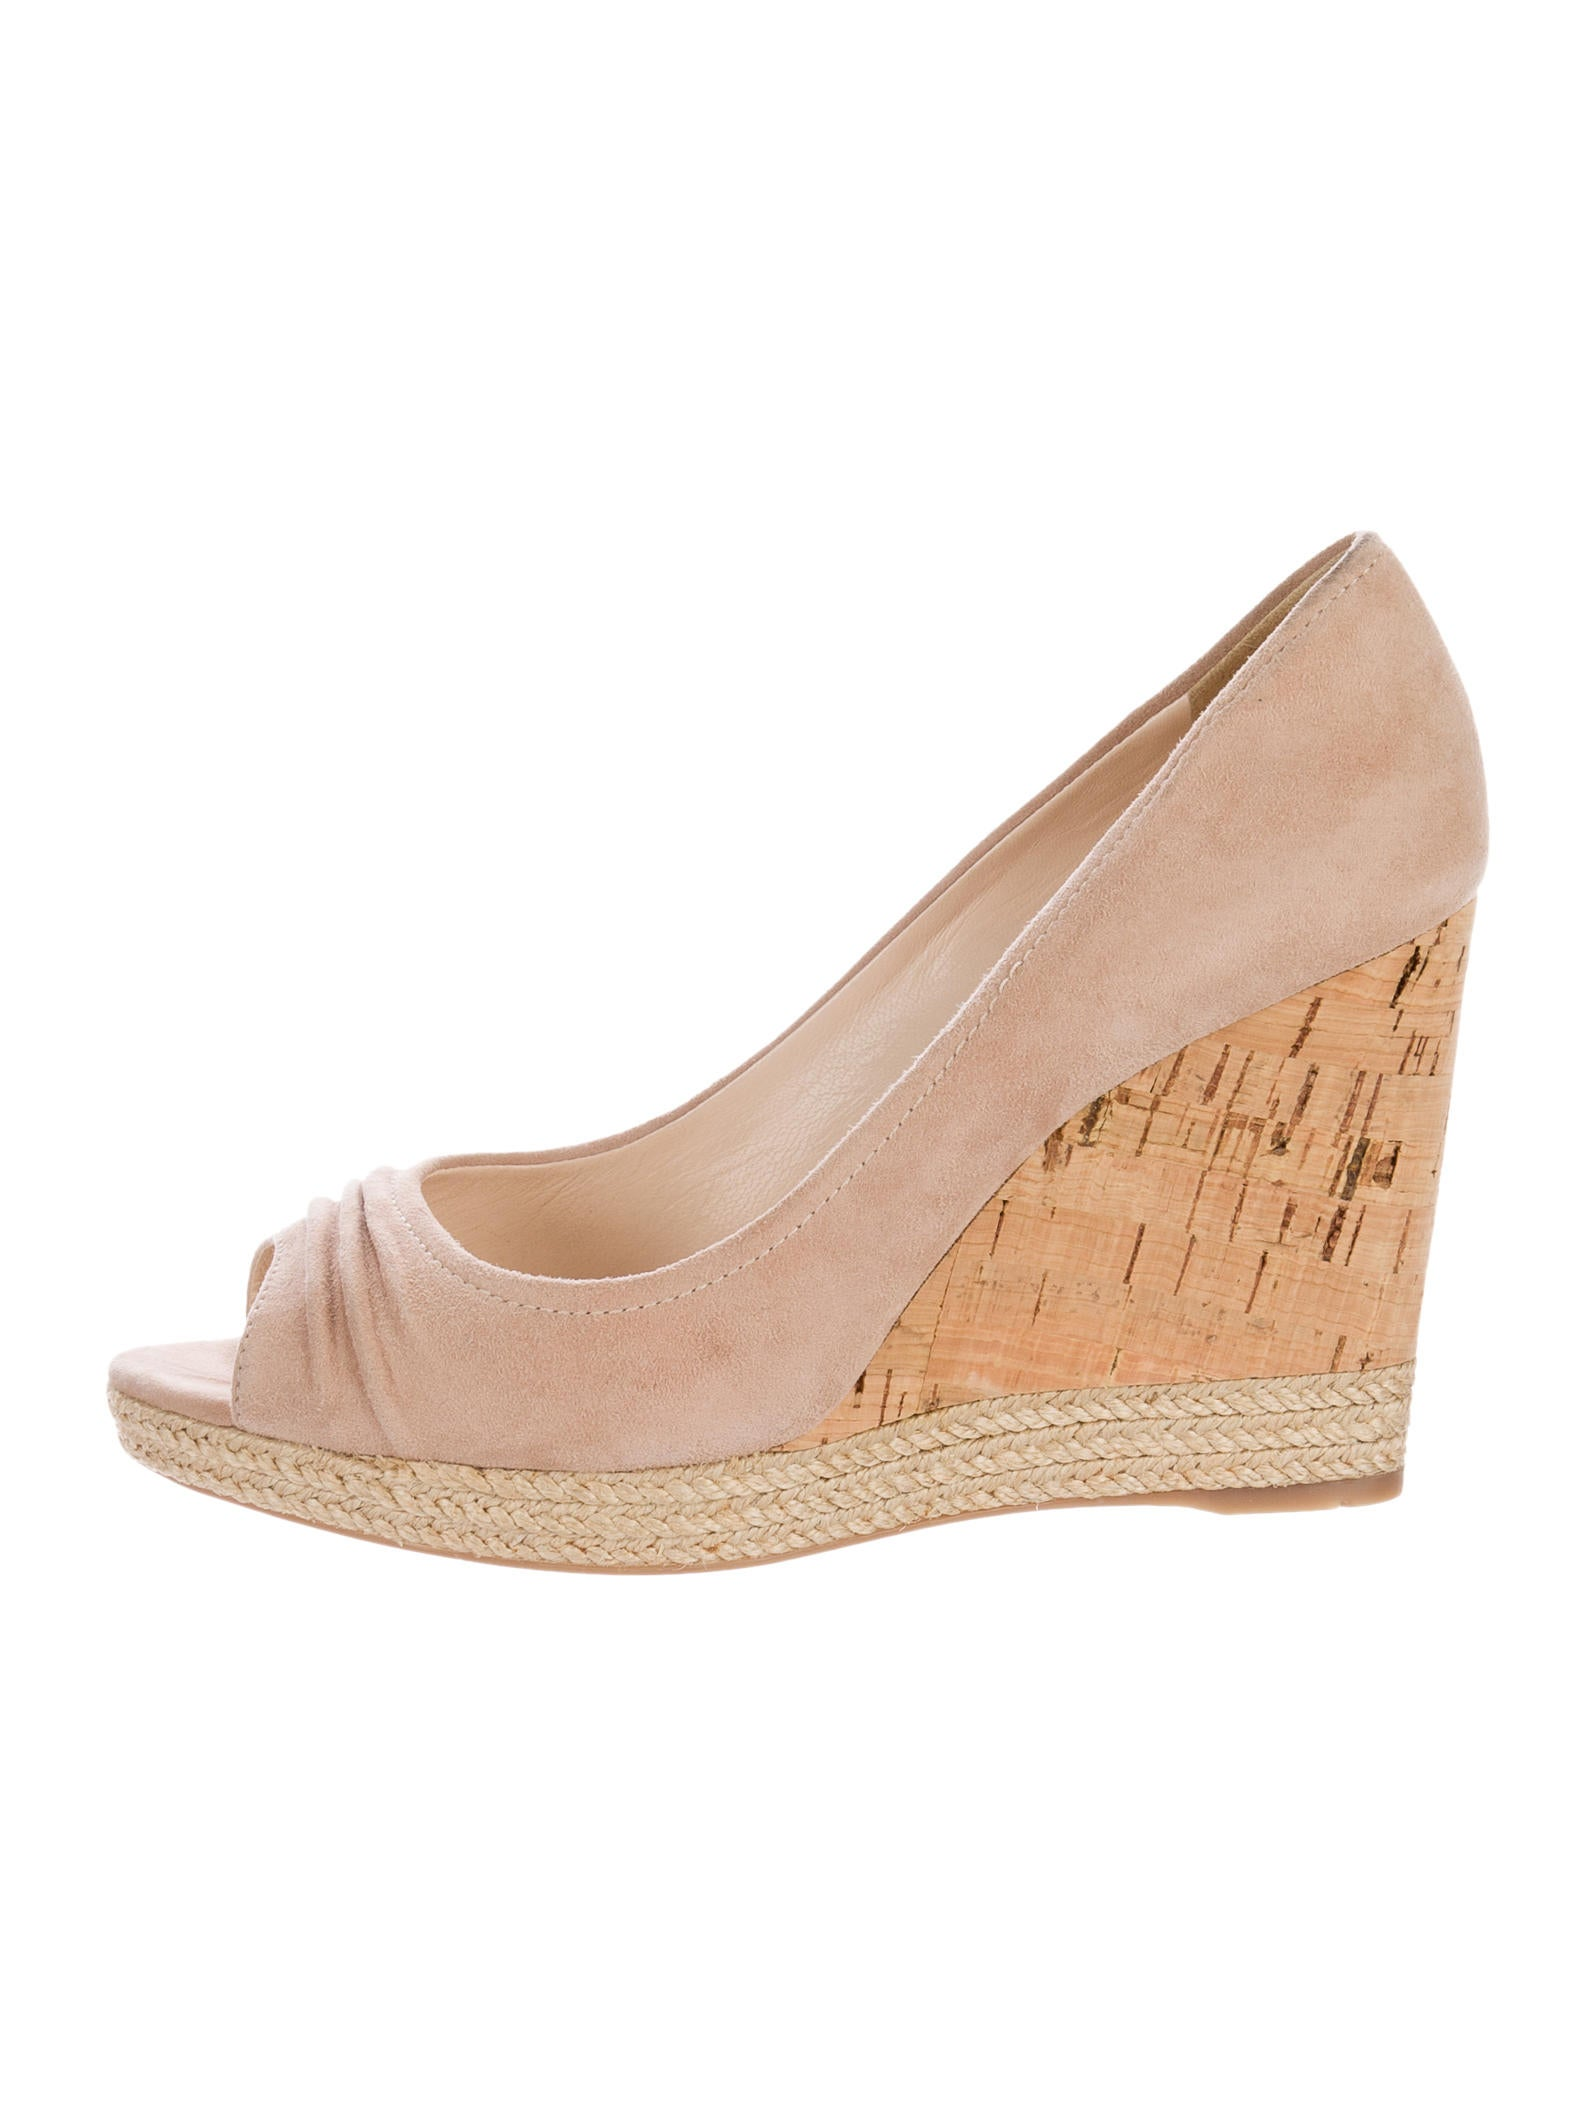 prada sport espadrille wedge pumps shoes wpr39480